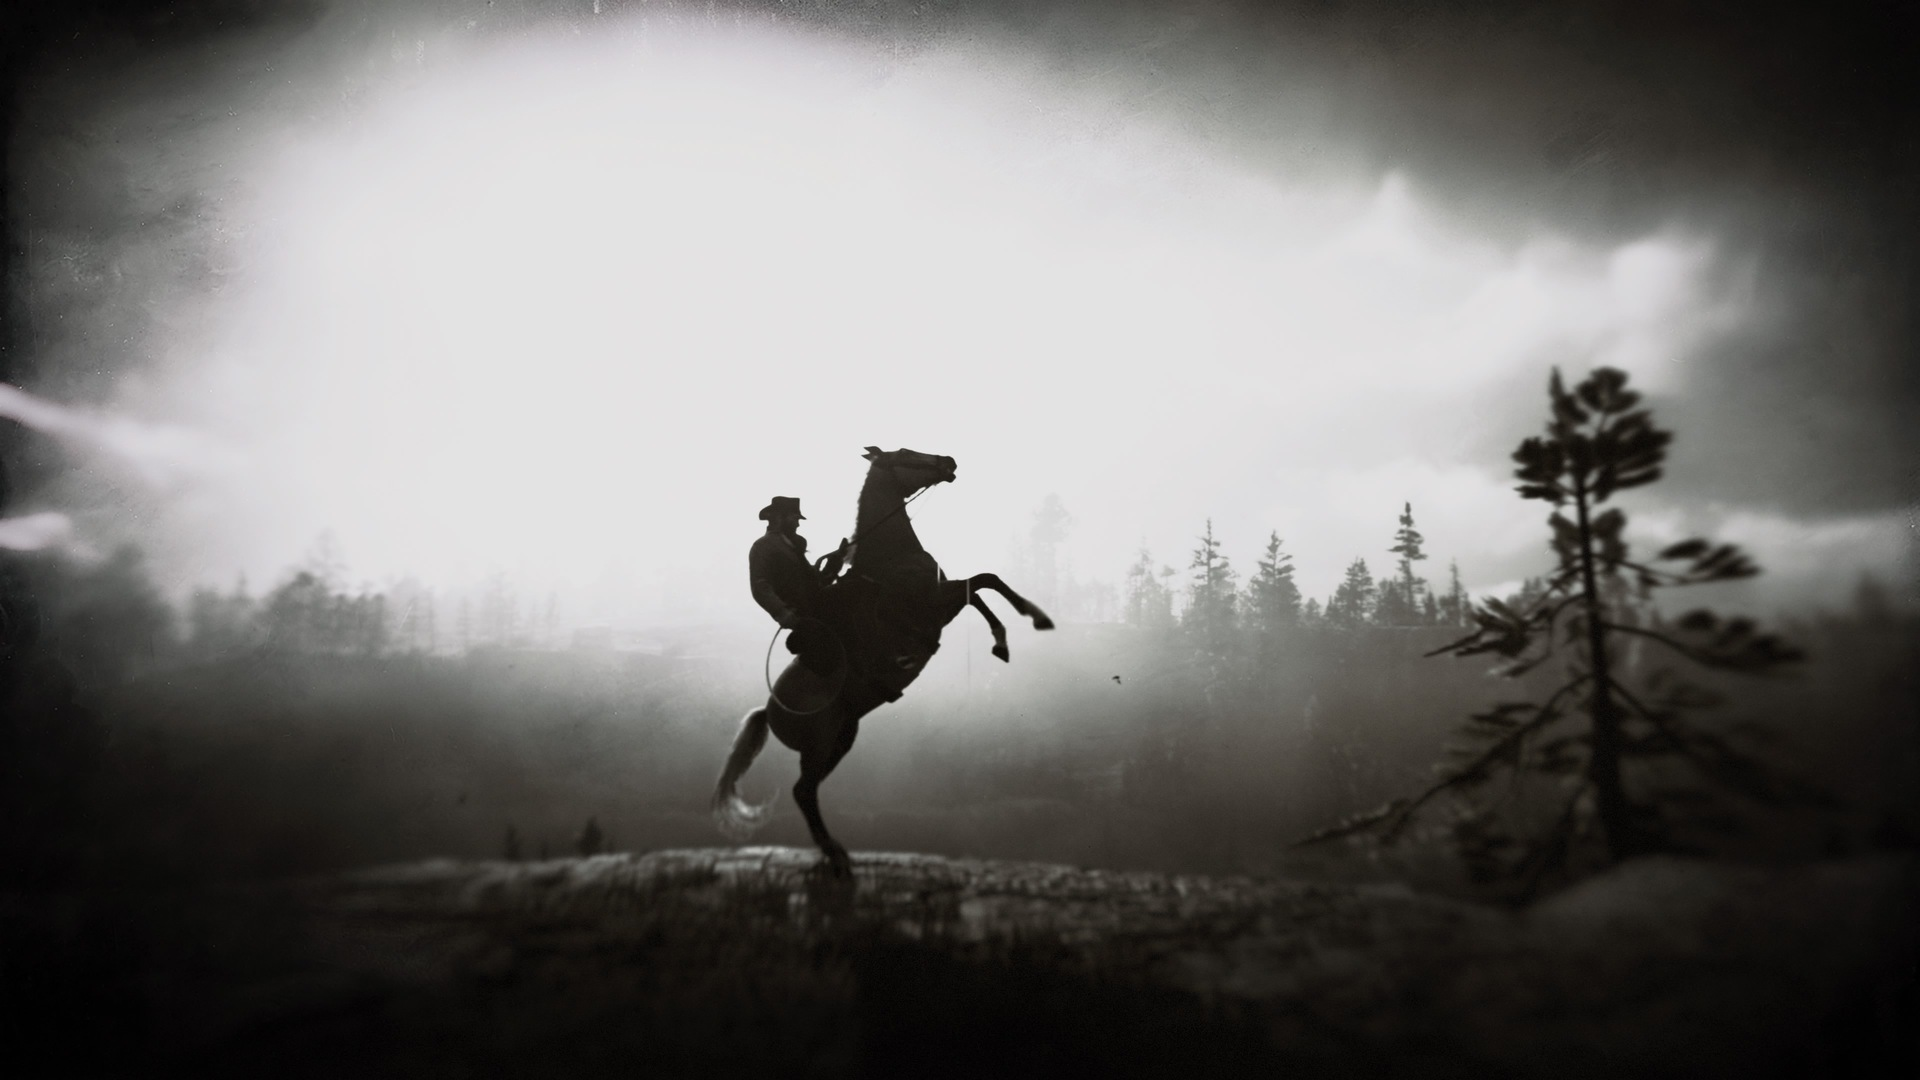 1920x1080 Red Dead Redemption 2 Horse Ride 4k Laptop Full ...